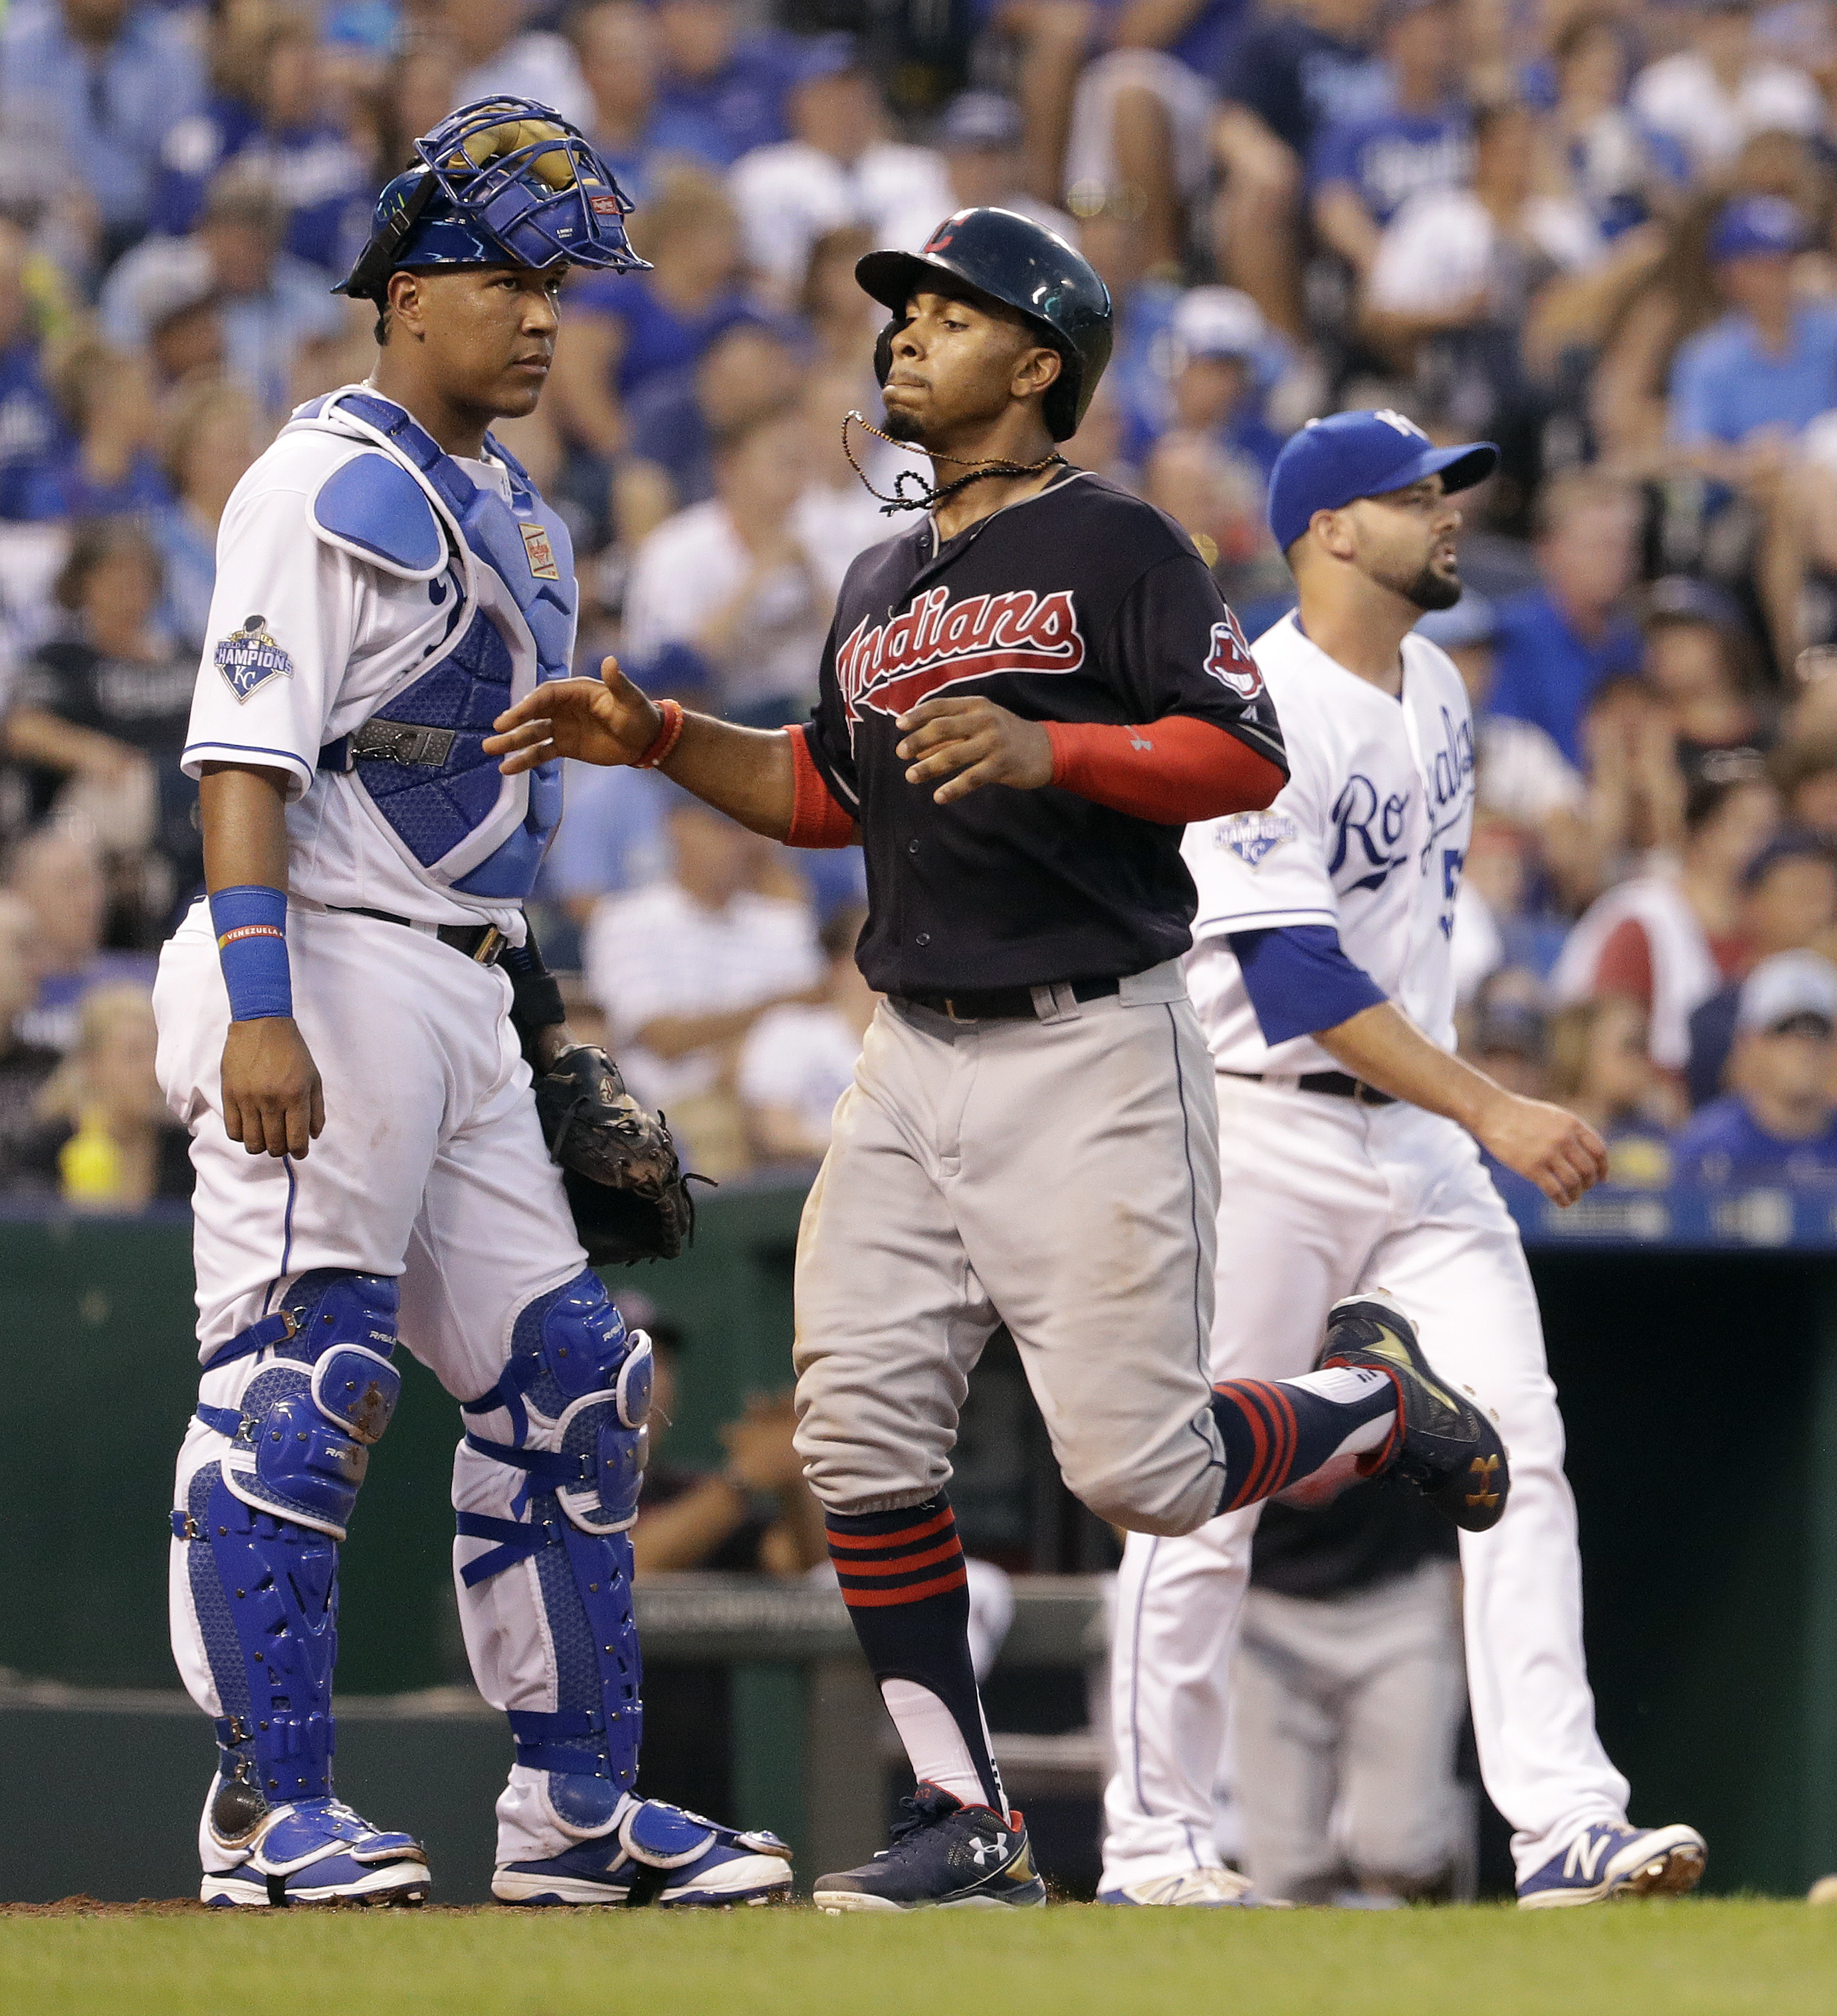 Cleveland Indians' Francisco Lindor runs past Kansas City Royals catcher Salvador Perez and relief pitcher Dillon Gee to score on a single by Carlos Santana during the fifth inning of a baseball game Tuesday, July 19, 2016, in Kansas City, Mo. (AP Photo/C